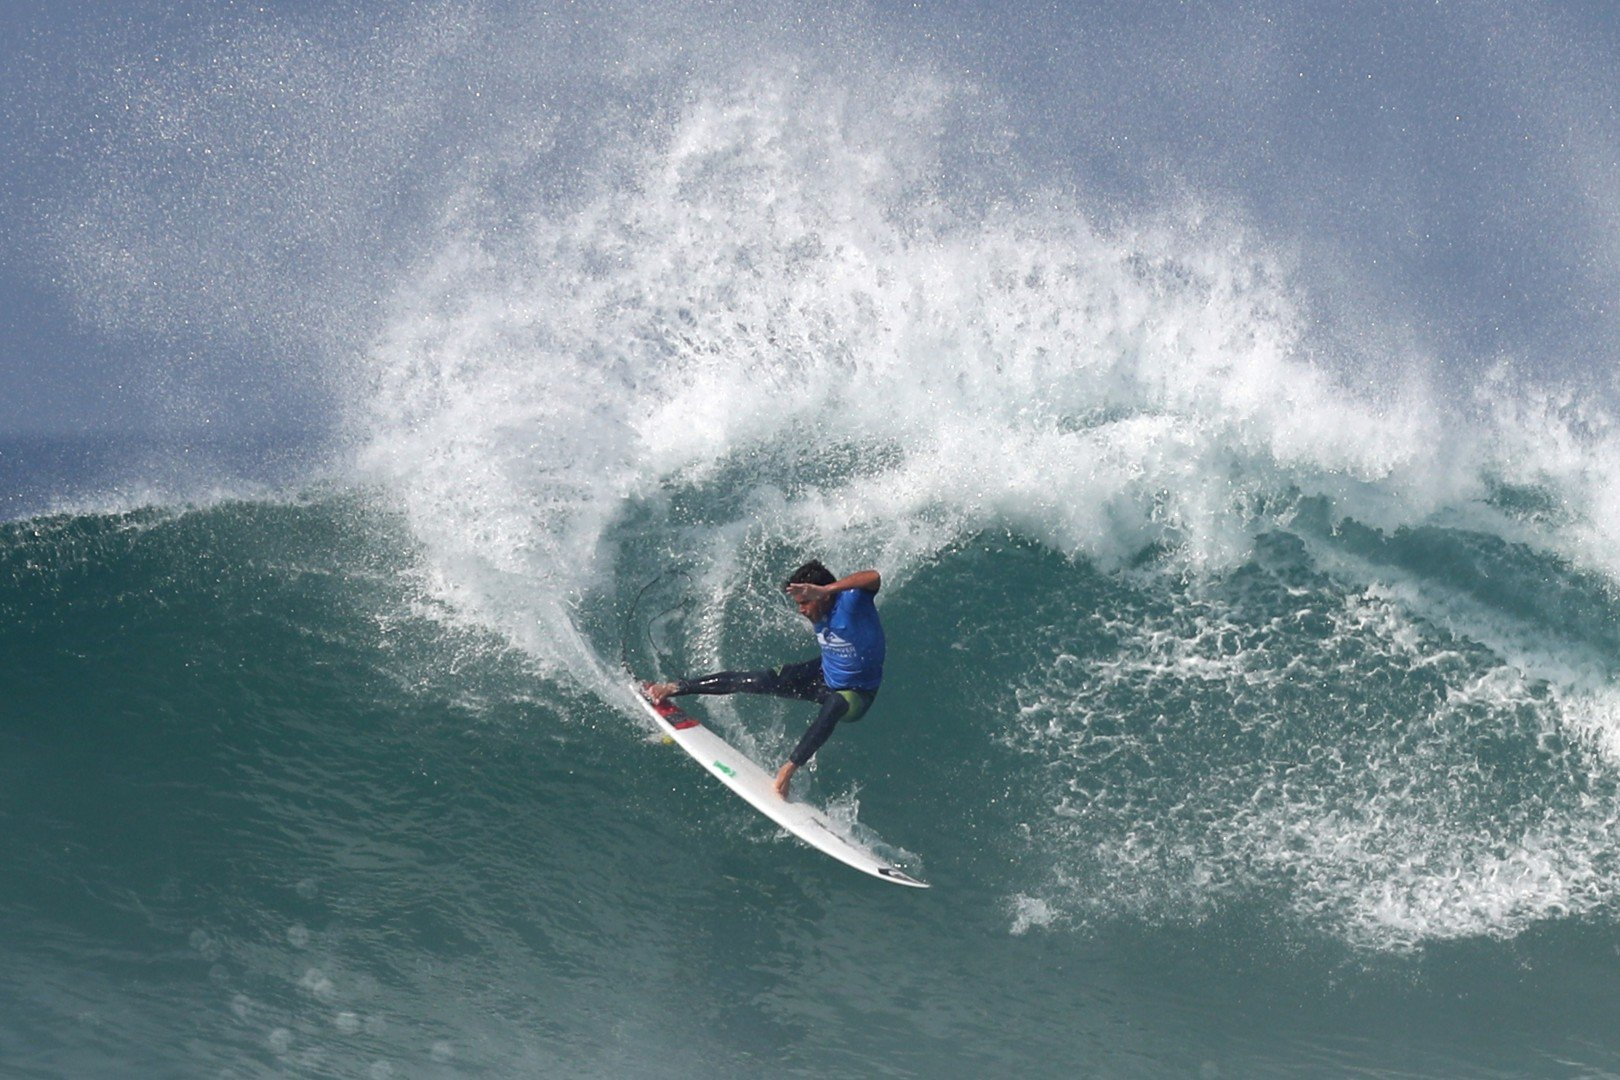 Surfing Then And Now In Southwest France 40 Years Of